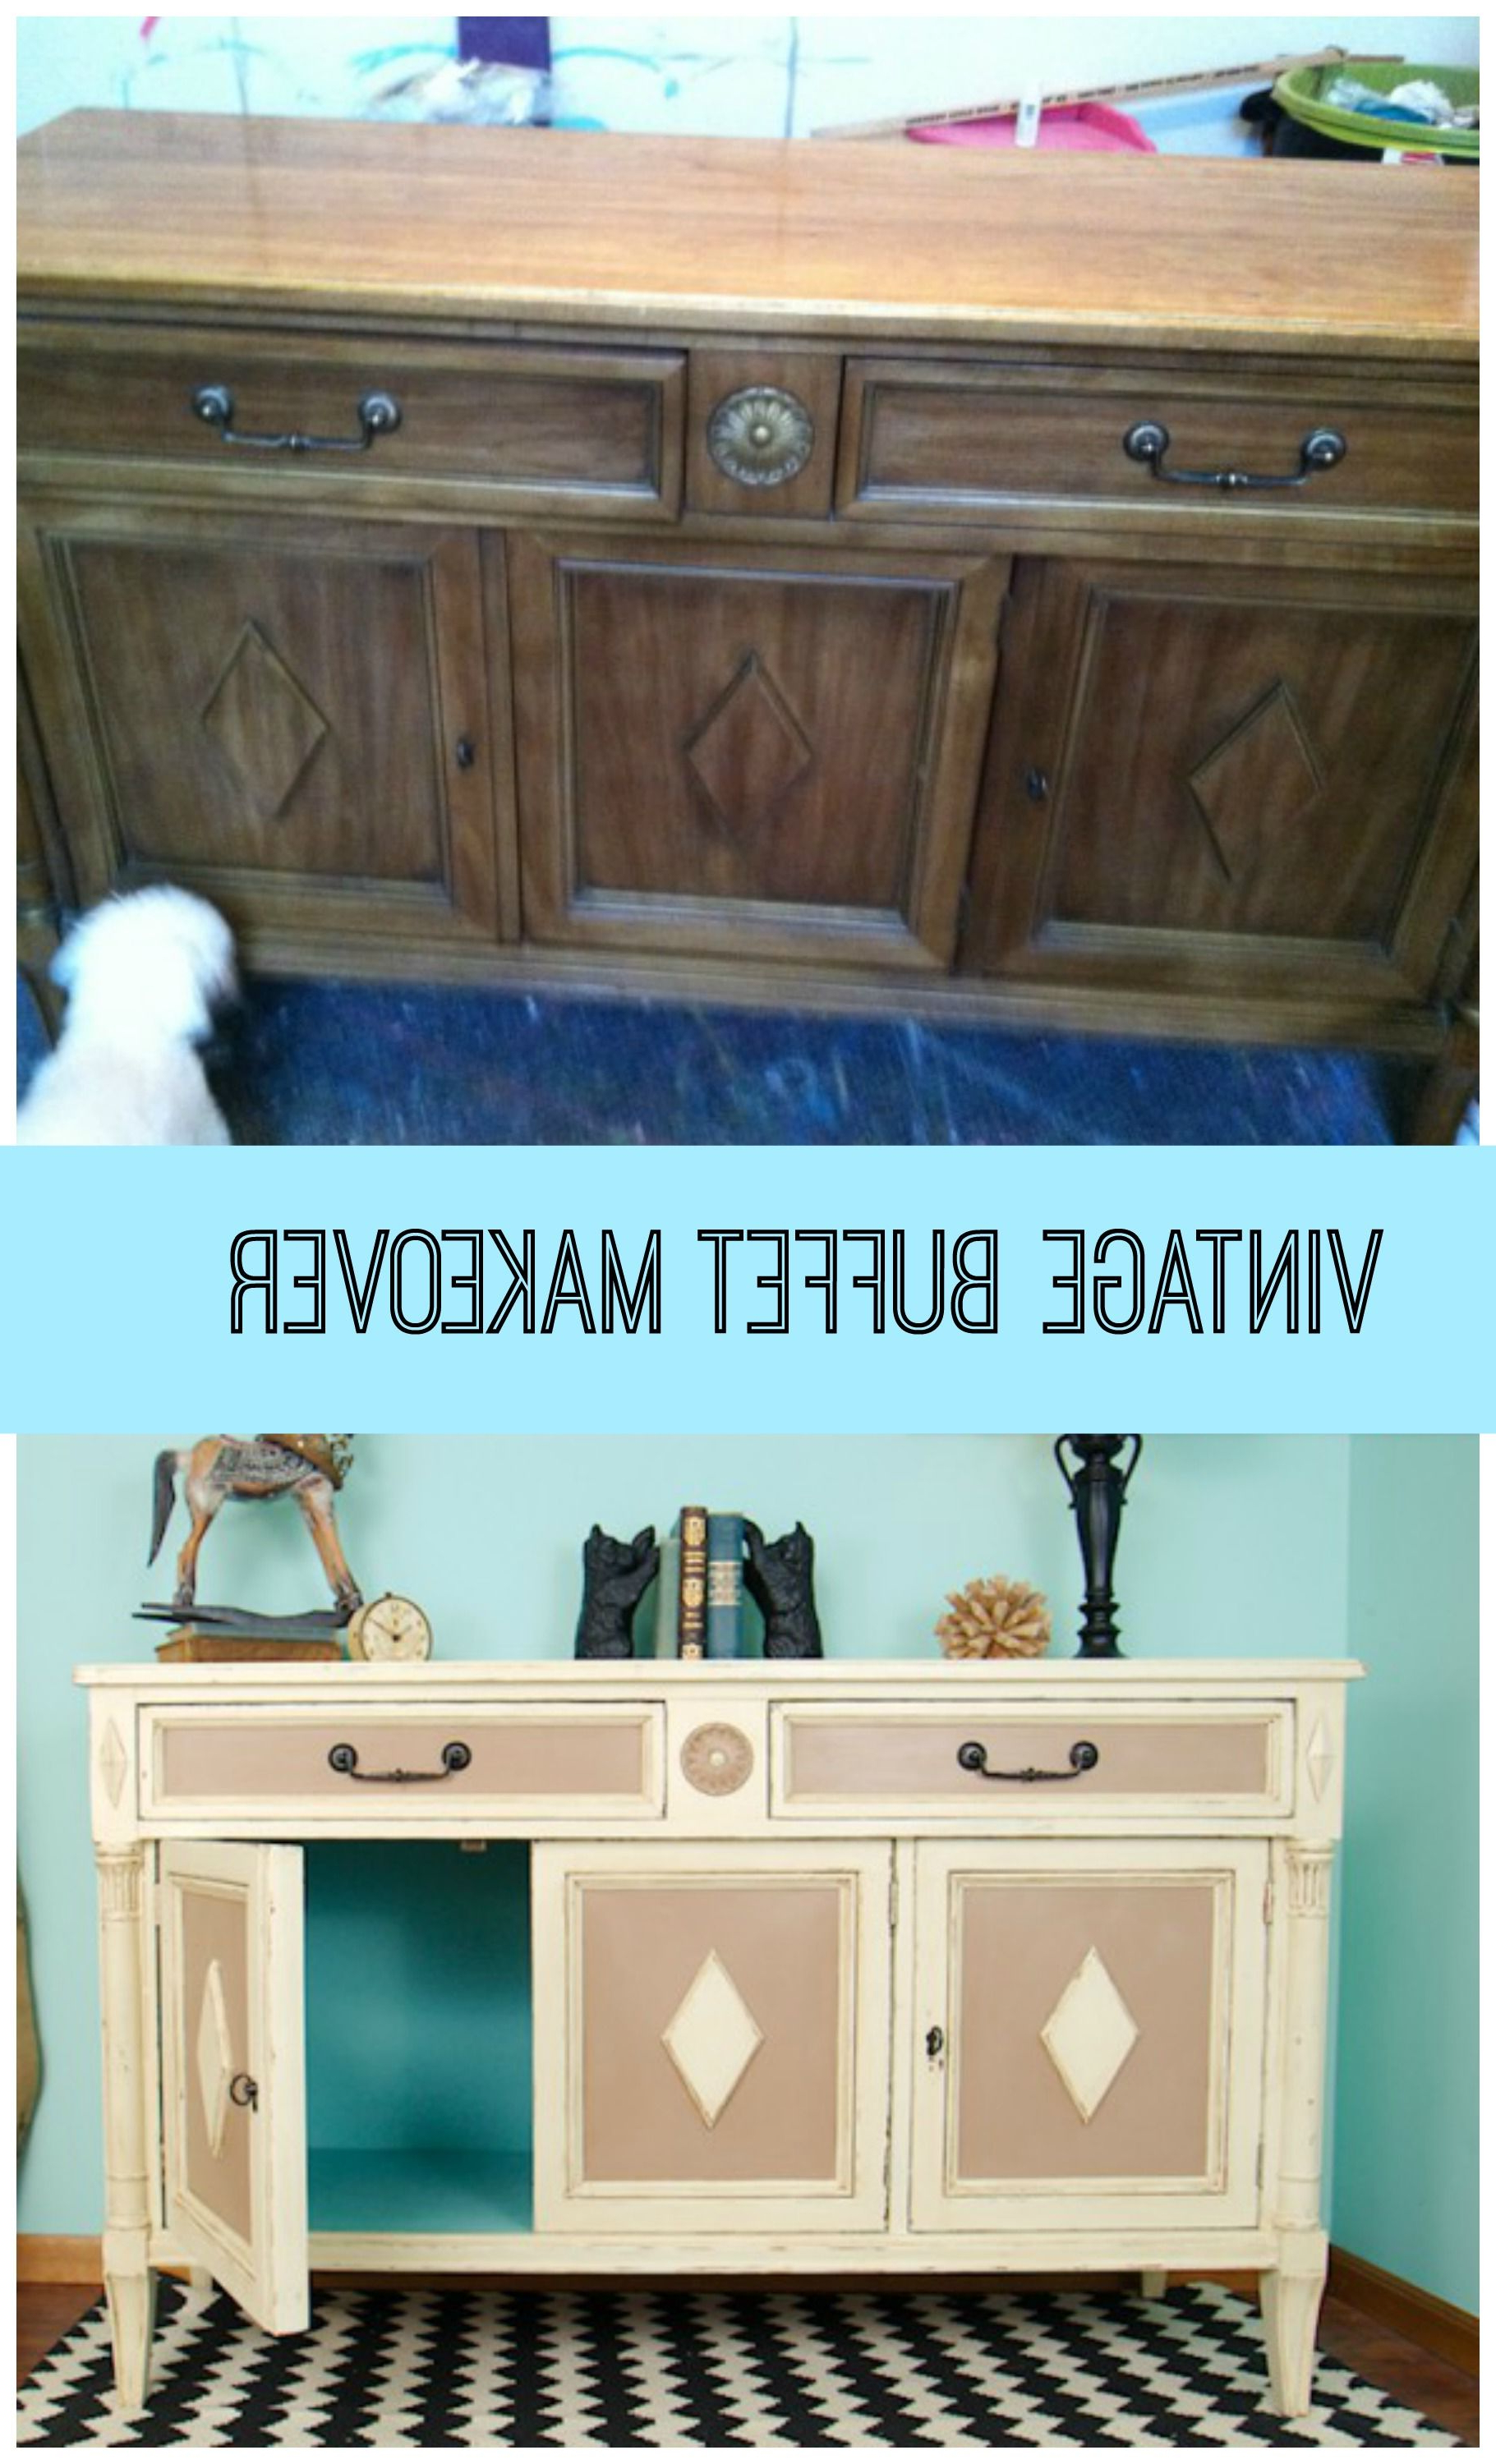 Muebles Life Zwd9 Goodwill Vintage Buffet Makeover Painted Two 2 toned Pinterest